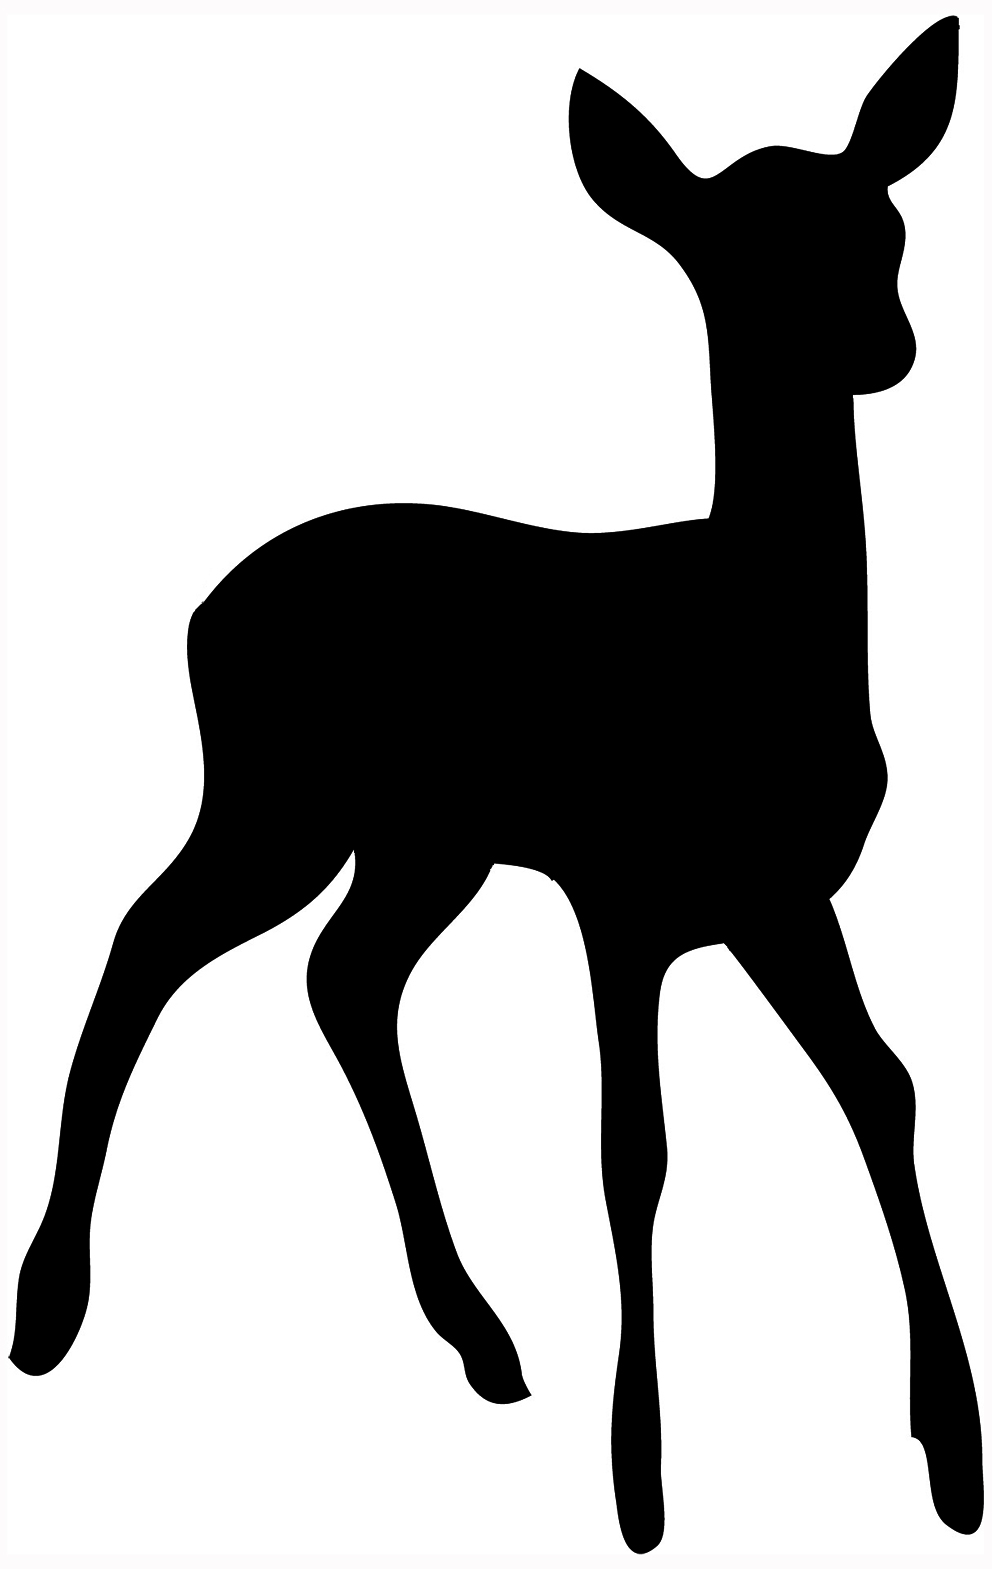 image regarding Deer Stencil Printable referred to as Cost-free Printable Deer Silhouette at  Free of charge for